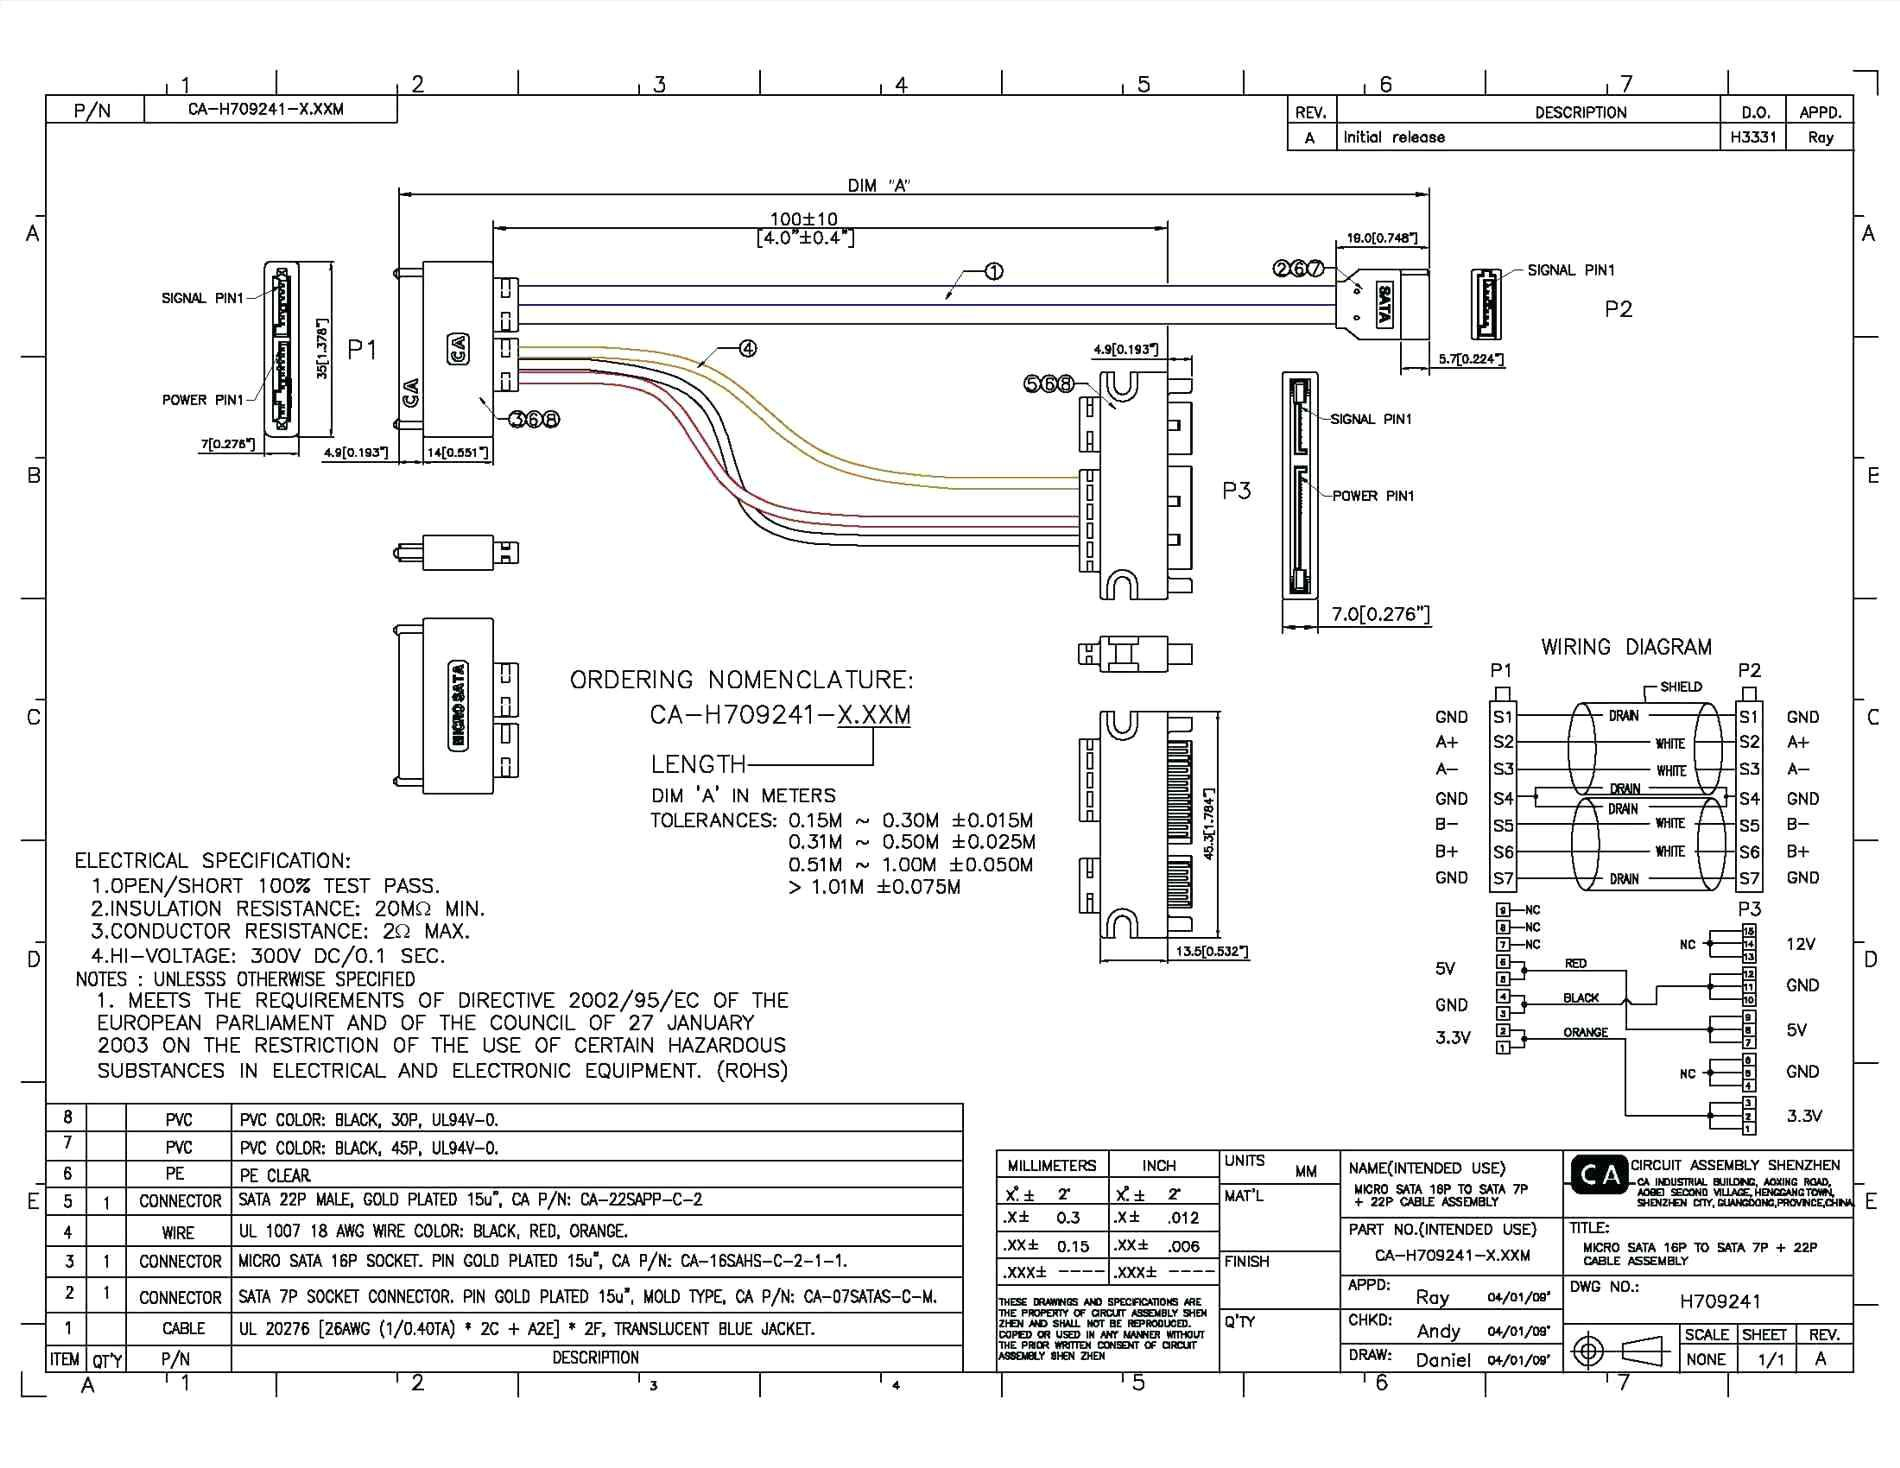 Sata To Usb Cable Wiring Diagram Copy Usb Serial Wiring Diagram I To - Wiring Diagram For Usb Cable